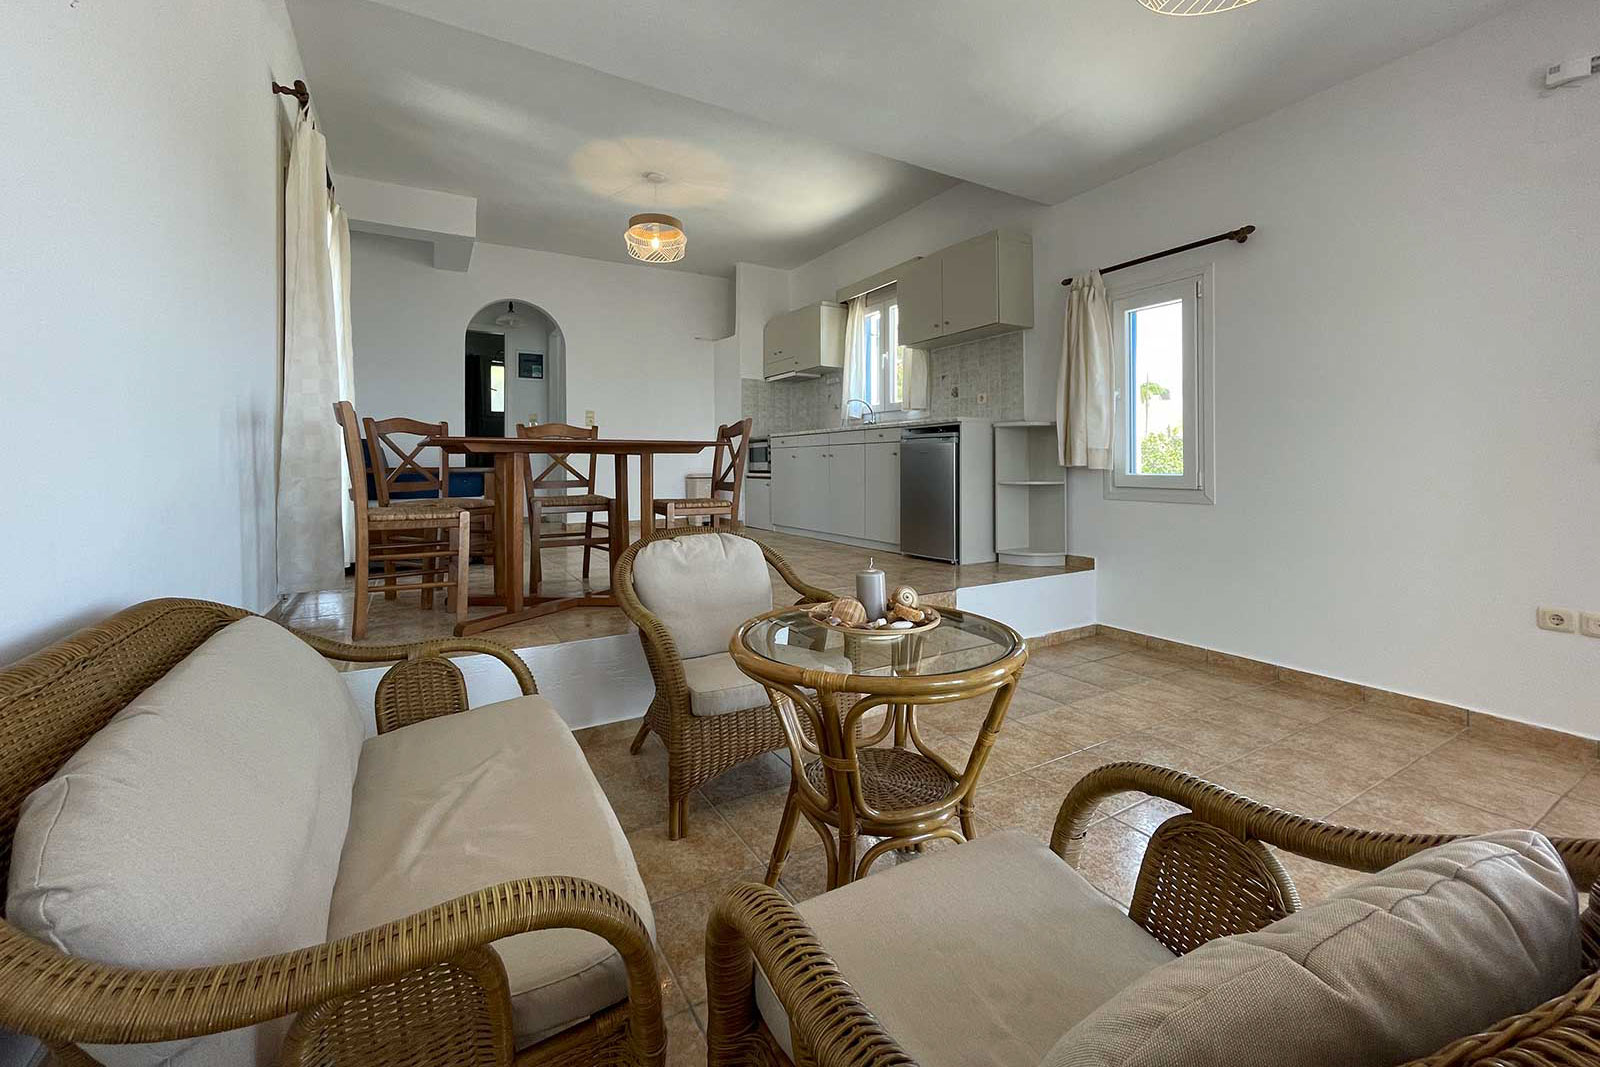 apartments-equipped-kitchen